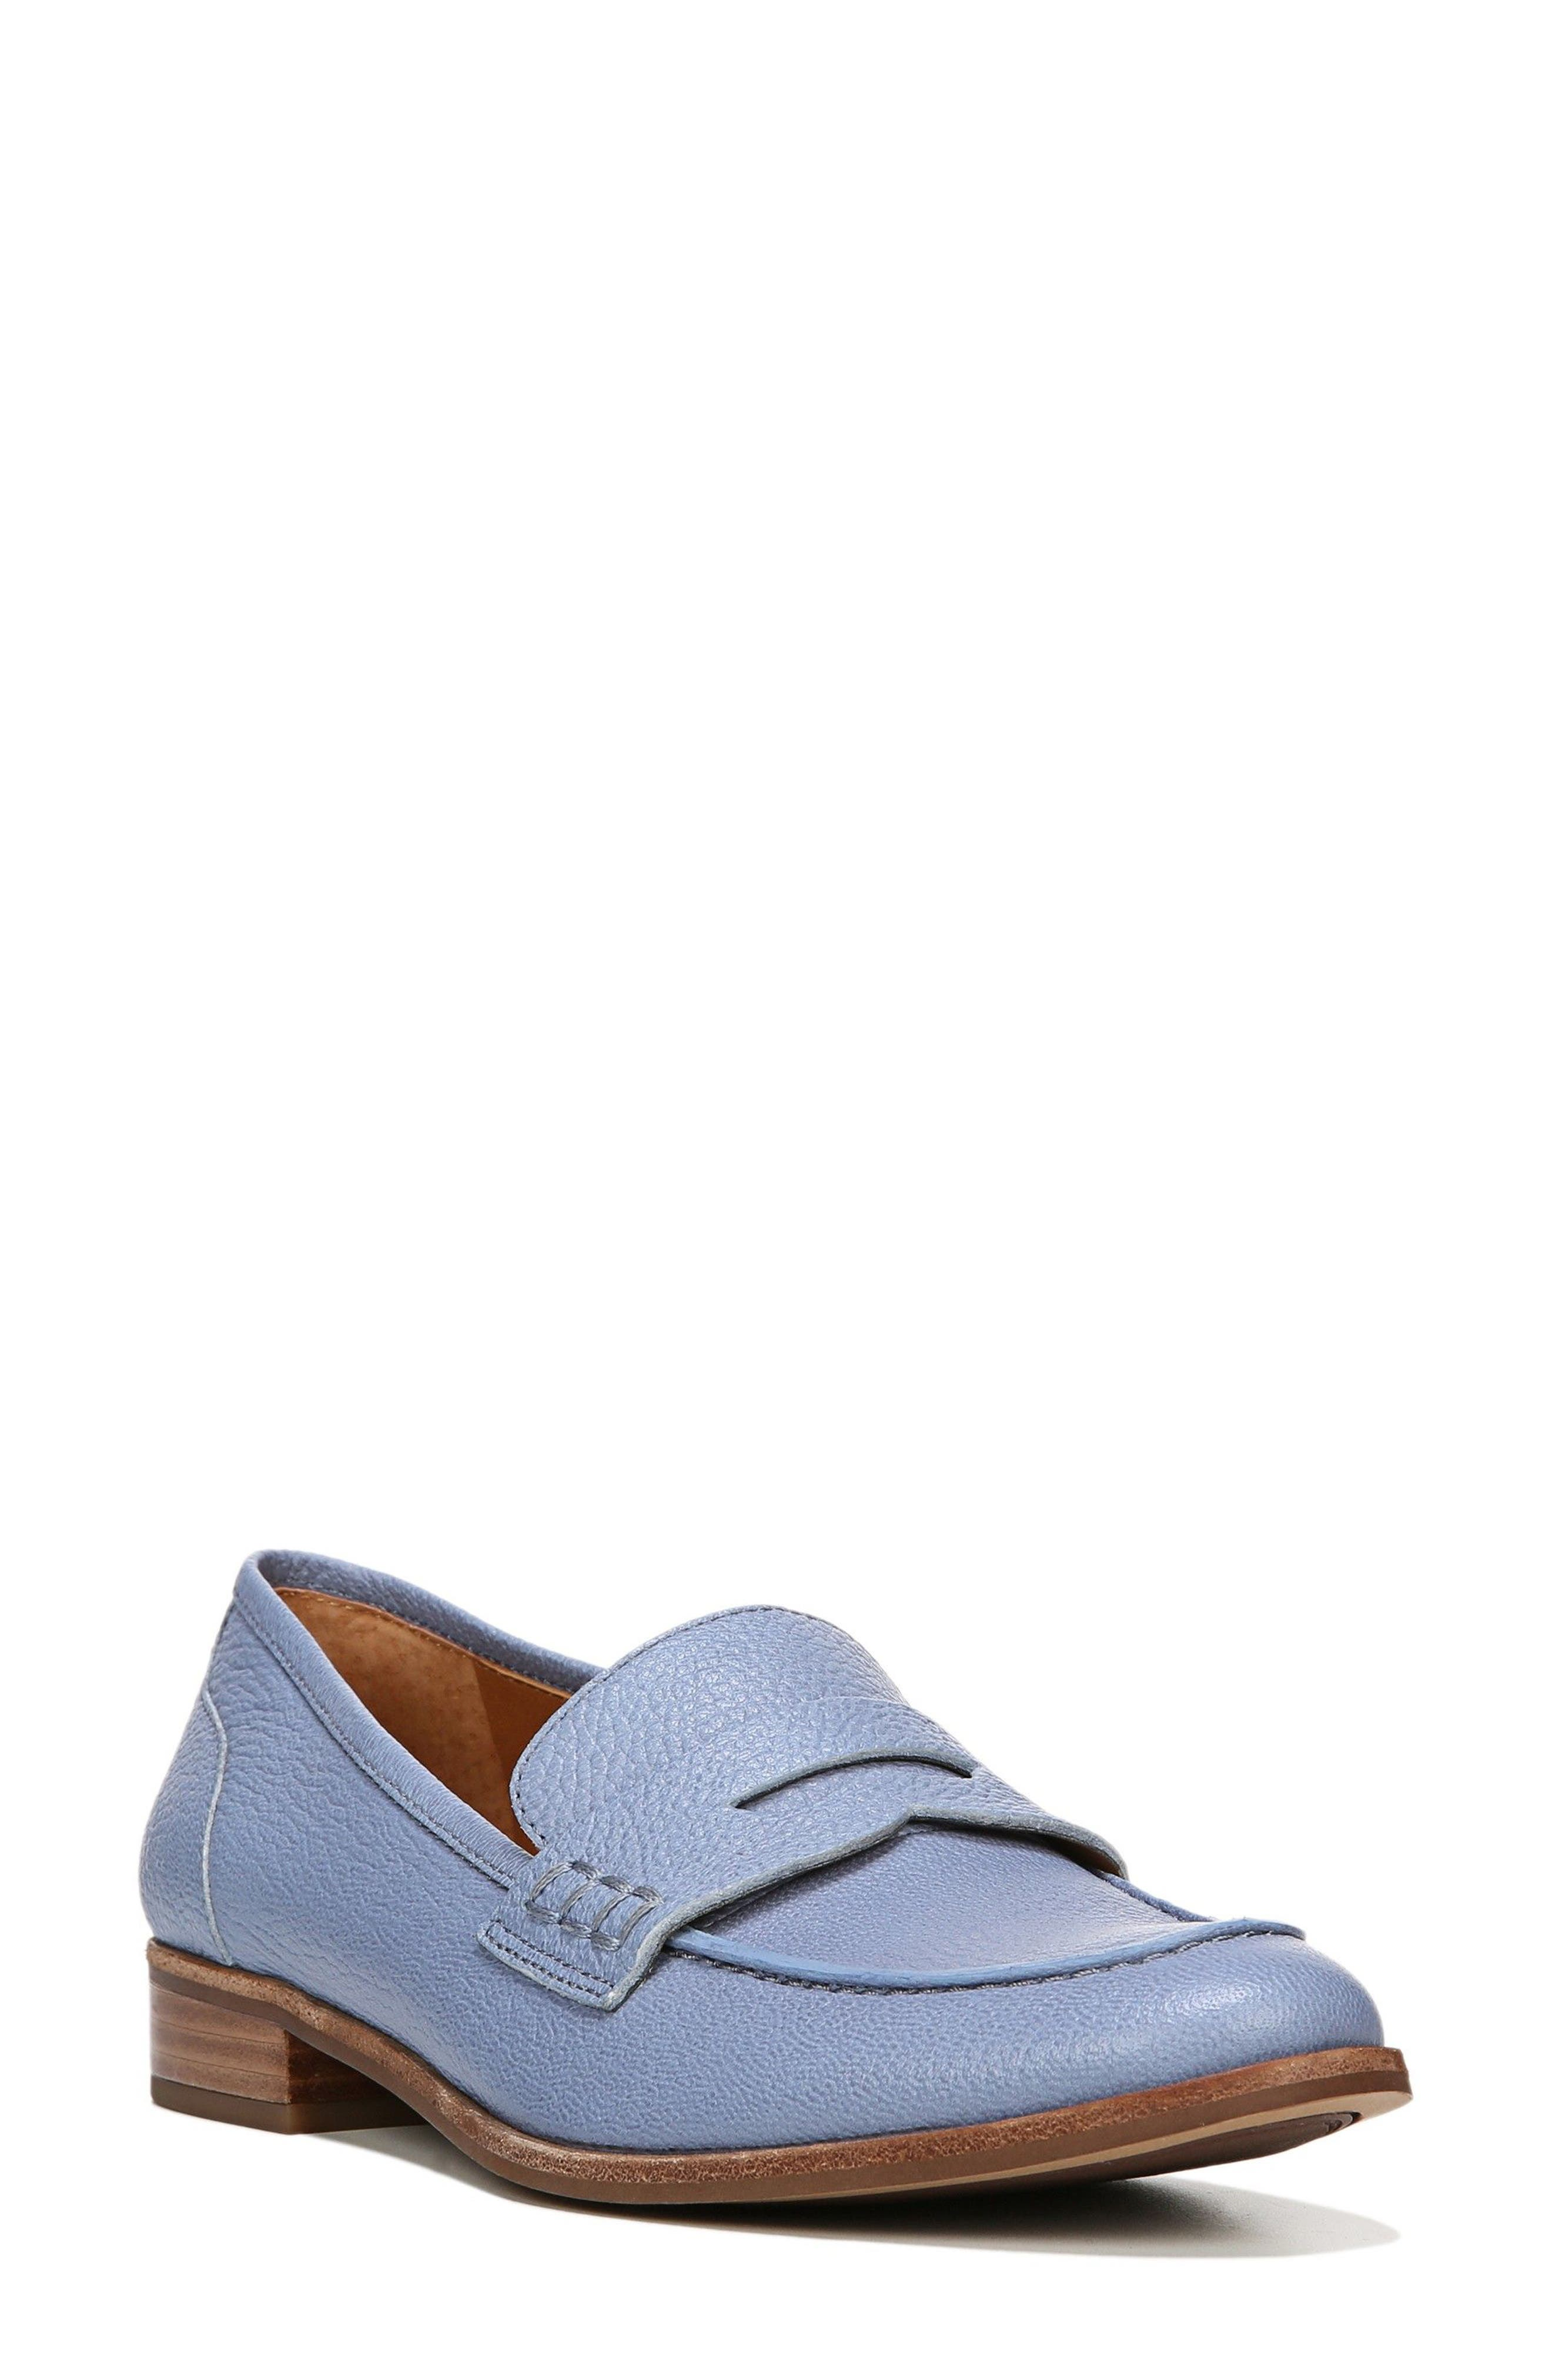 'Jolette' Penny Loafer,                             Main thumbnail 20, color,